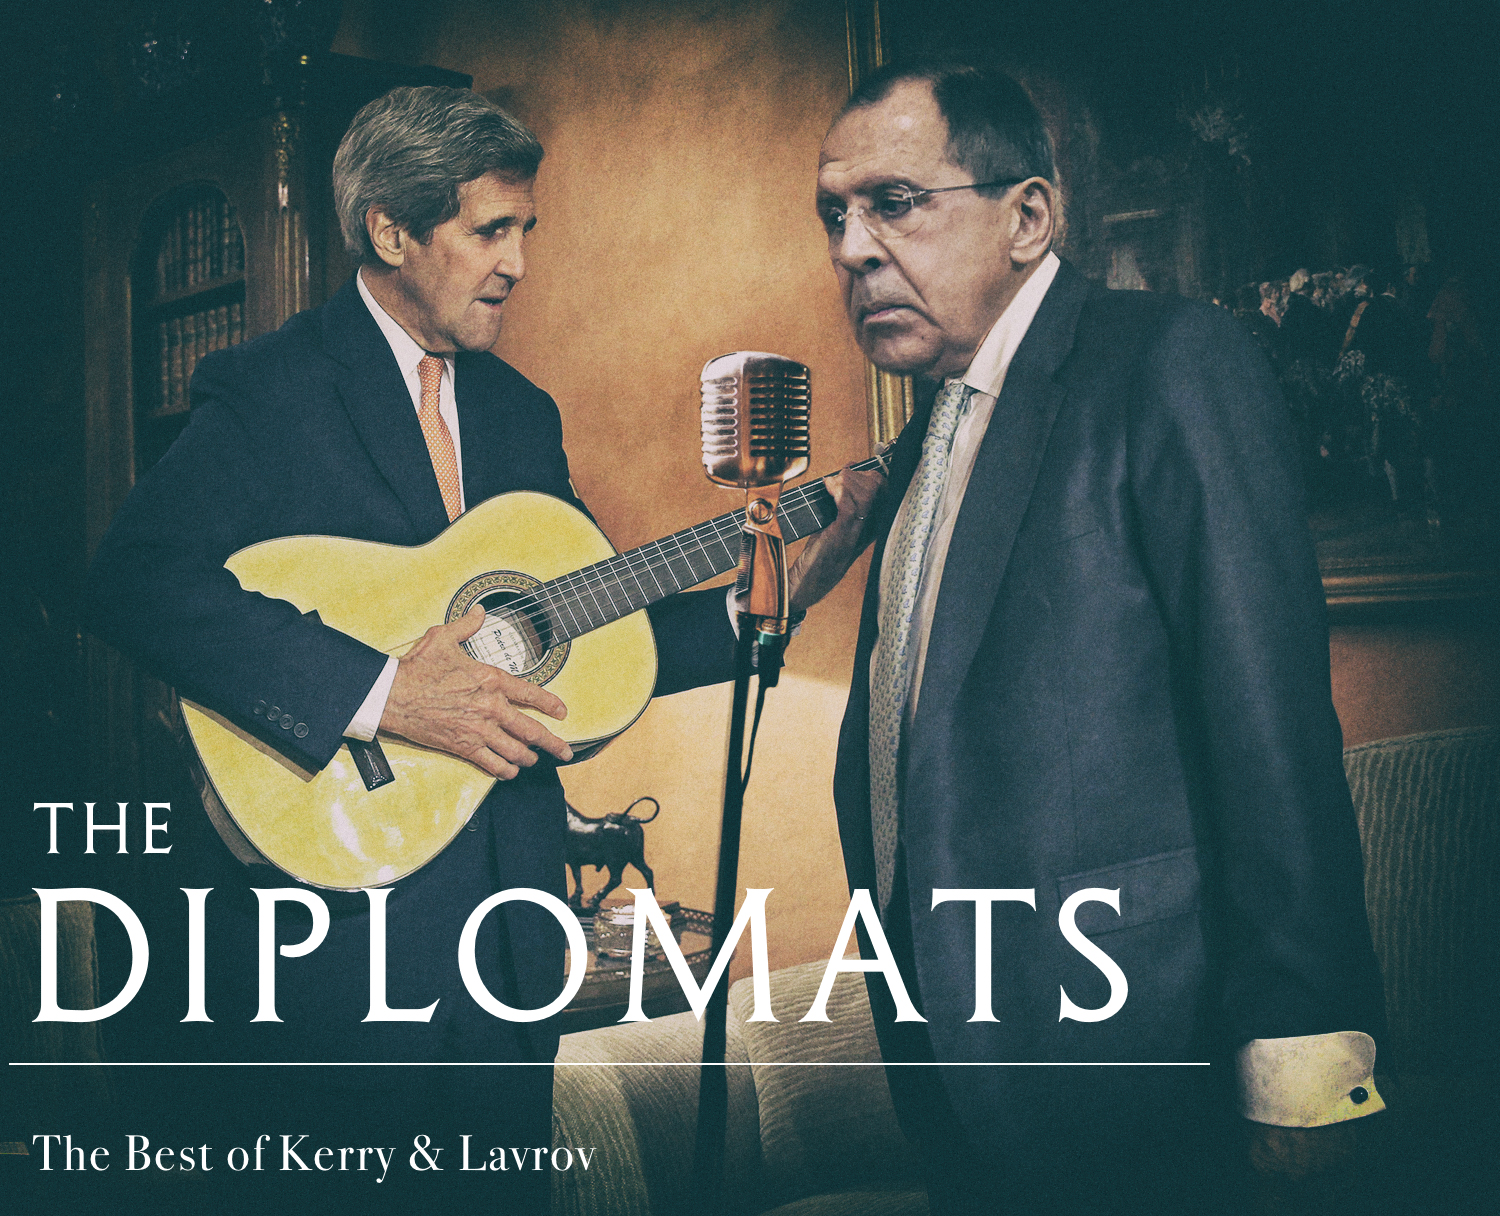 Kerry and Lavrov to form new band called The Diplomats - Kerry on guitar, Lavrov on vocals